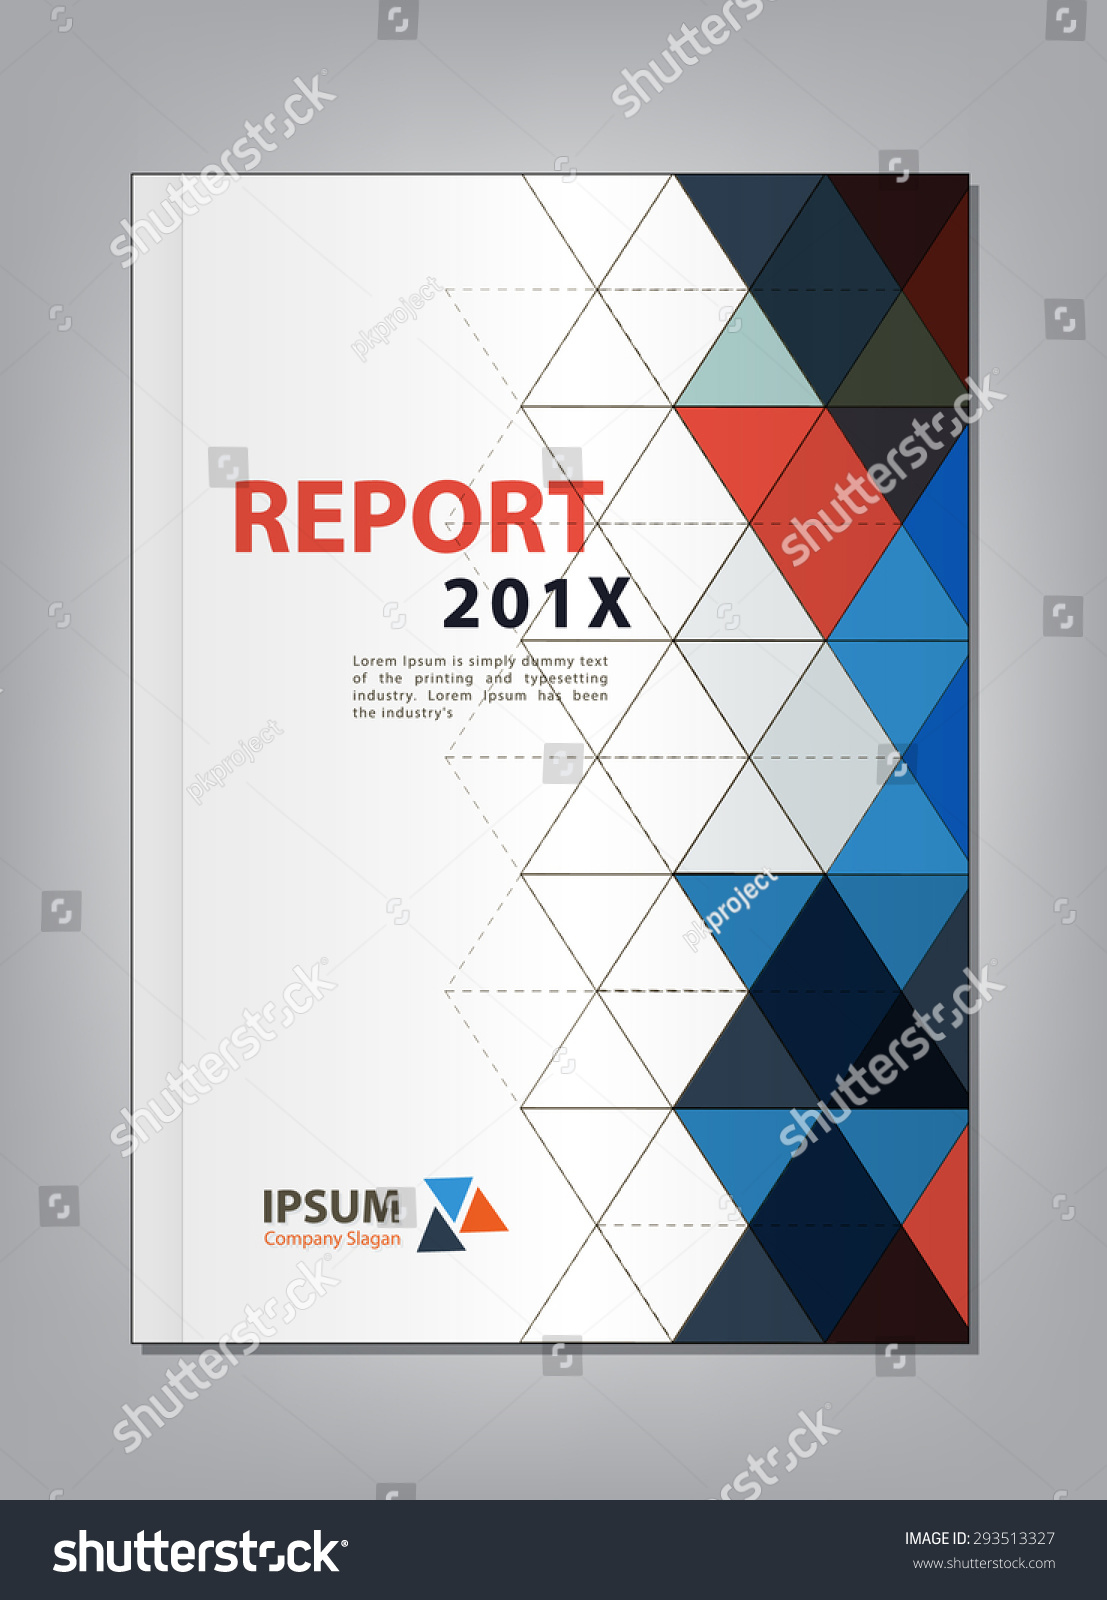 modern annual report cover design vector stock vector  modern annual report cover design vector multiply triangle theme concept